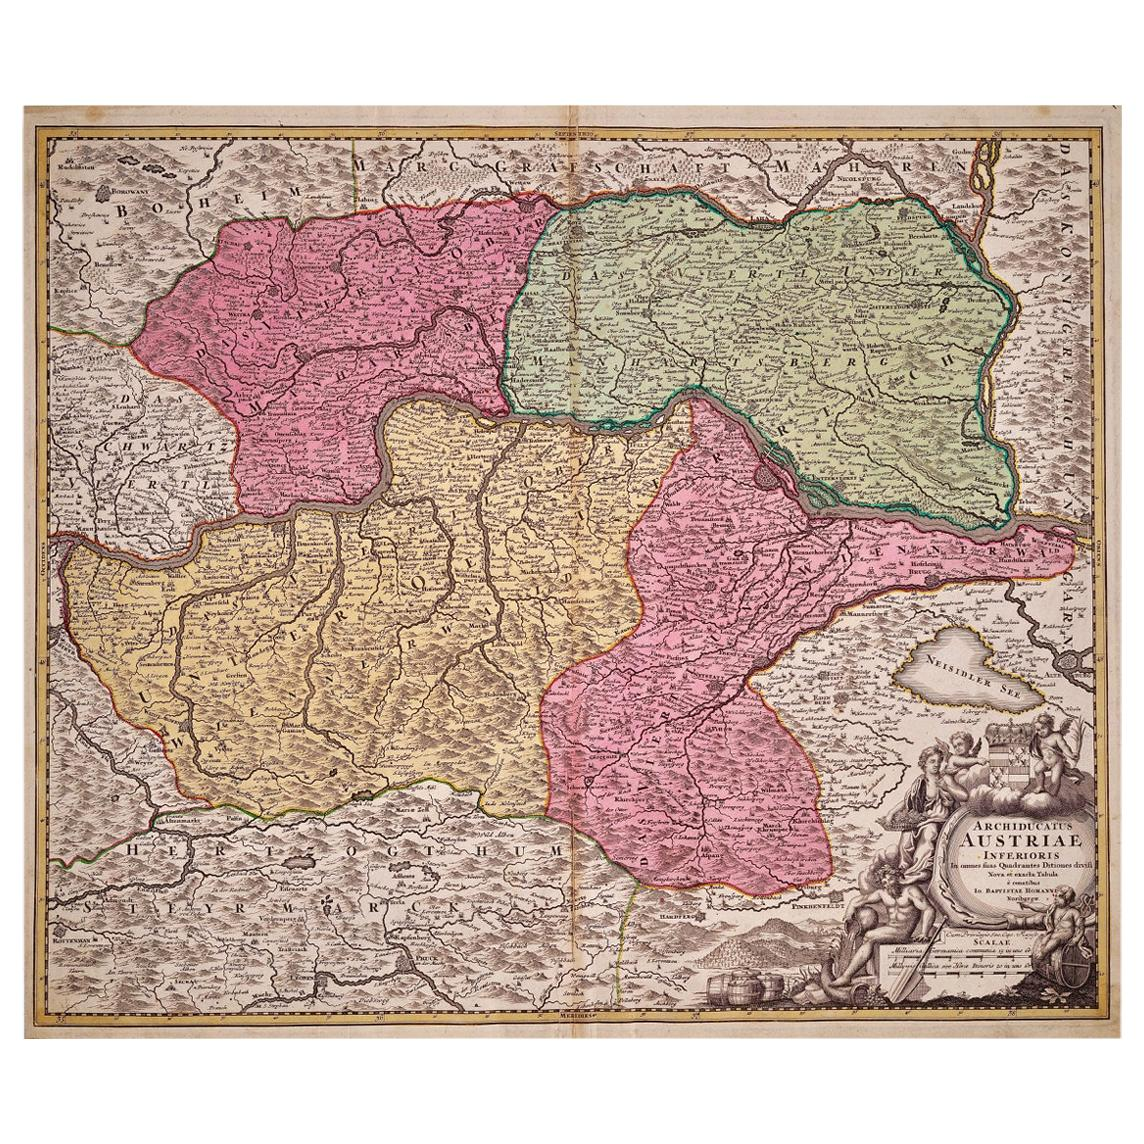 Hand Colored 18th Century Homann Map of Austria Including Vienna and the Danube